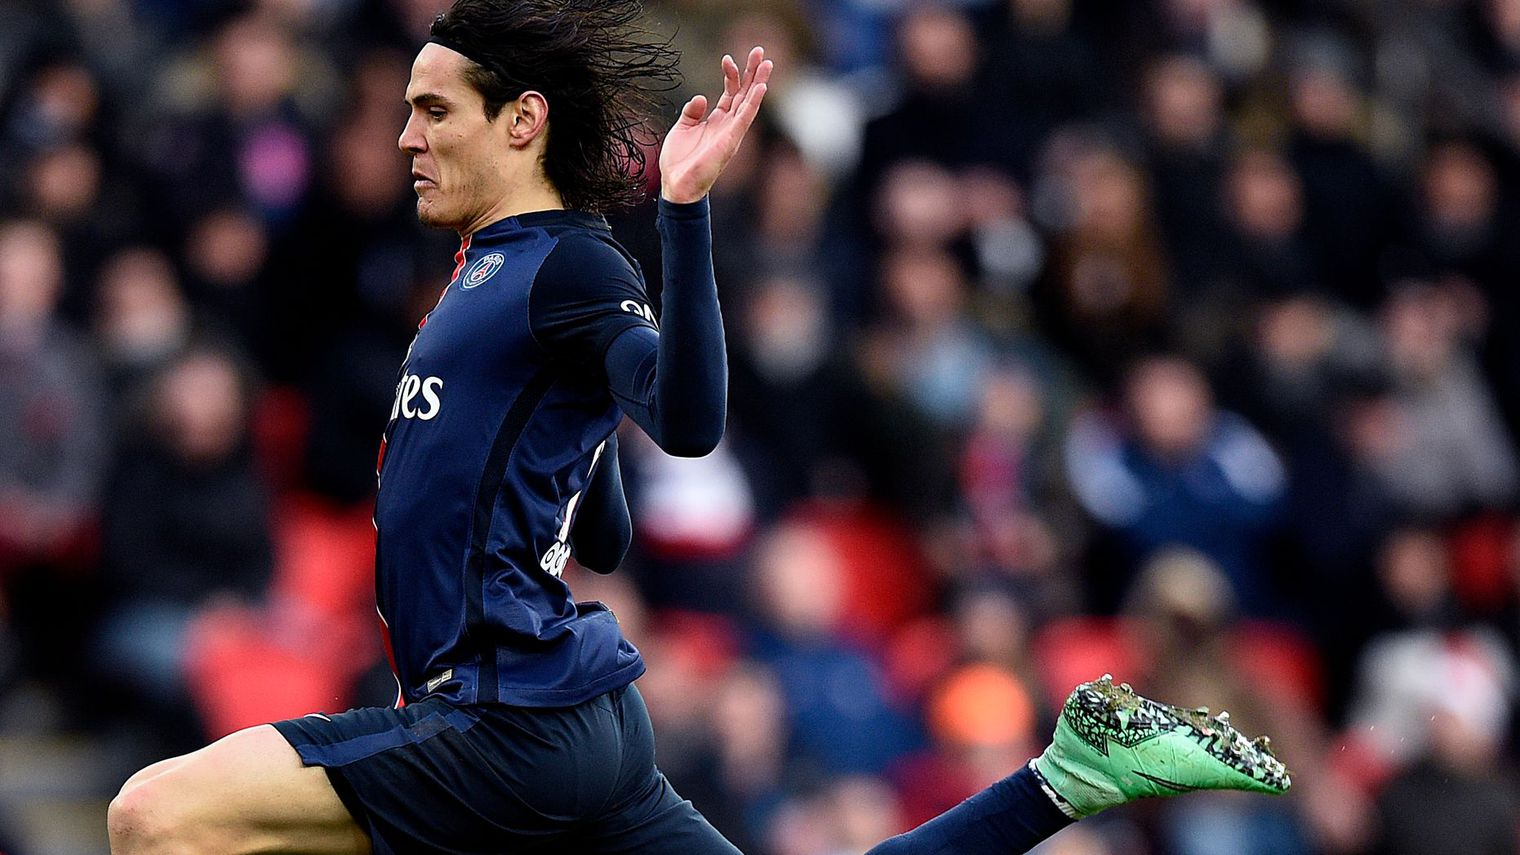 La prolongation de Cavani traine